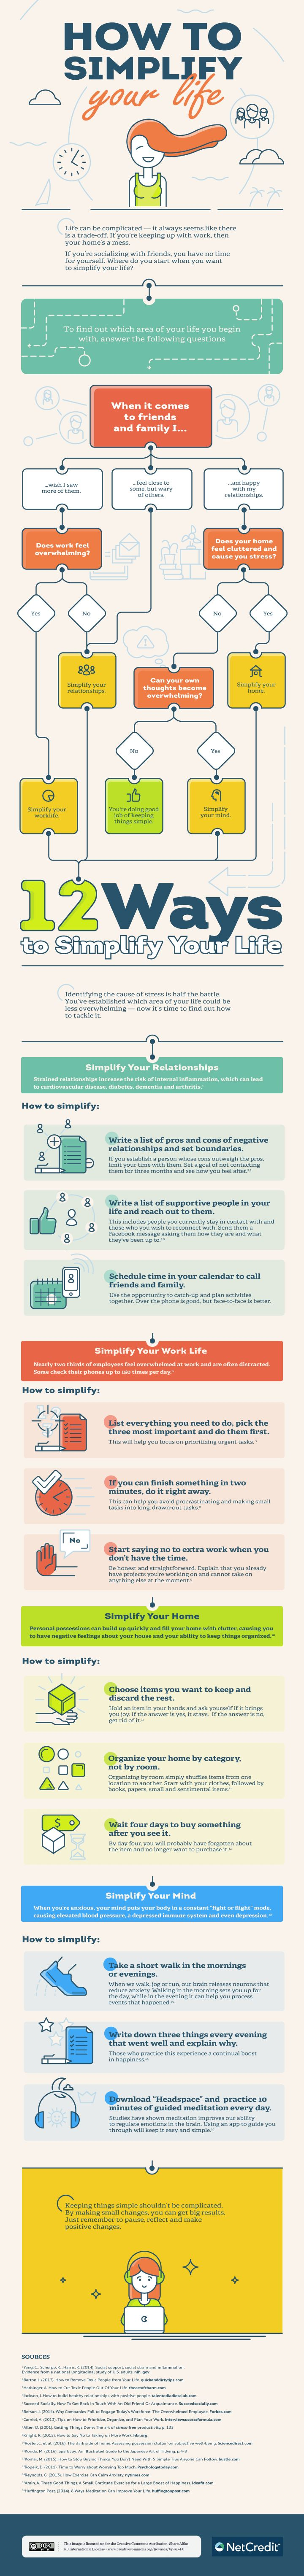 How to simplify your life - tips and ideas for making life easy. Inspiration